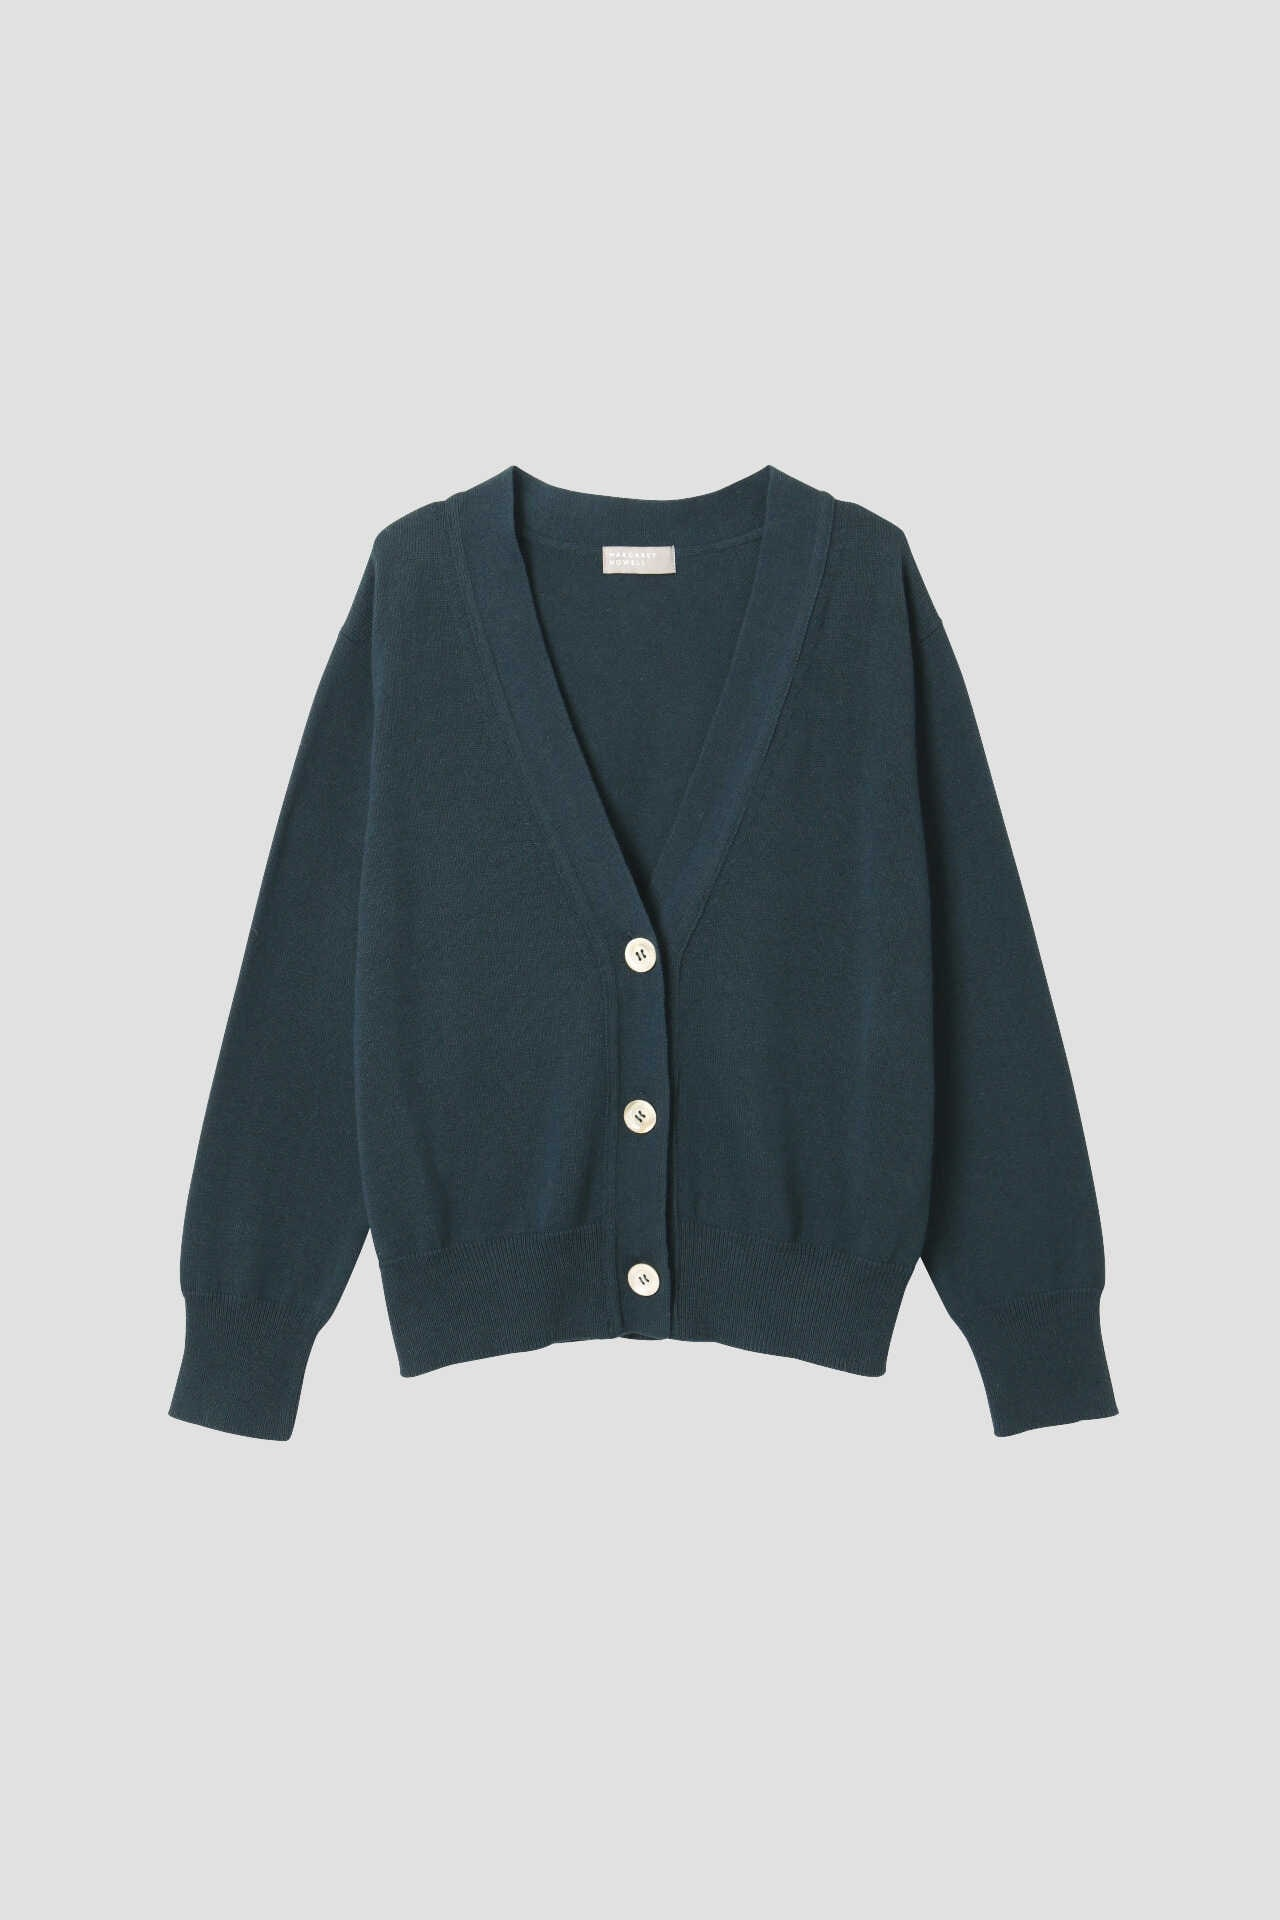 COTTON CASHMERE V NECK CARDIGAN9